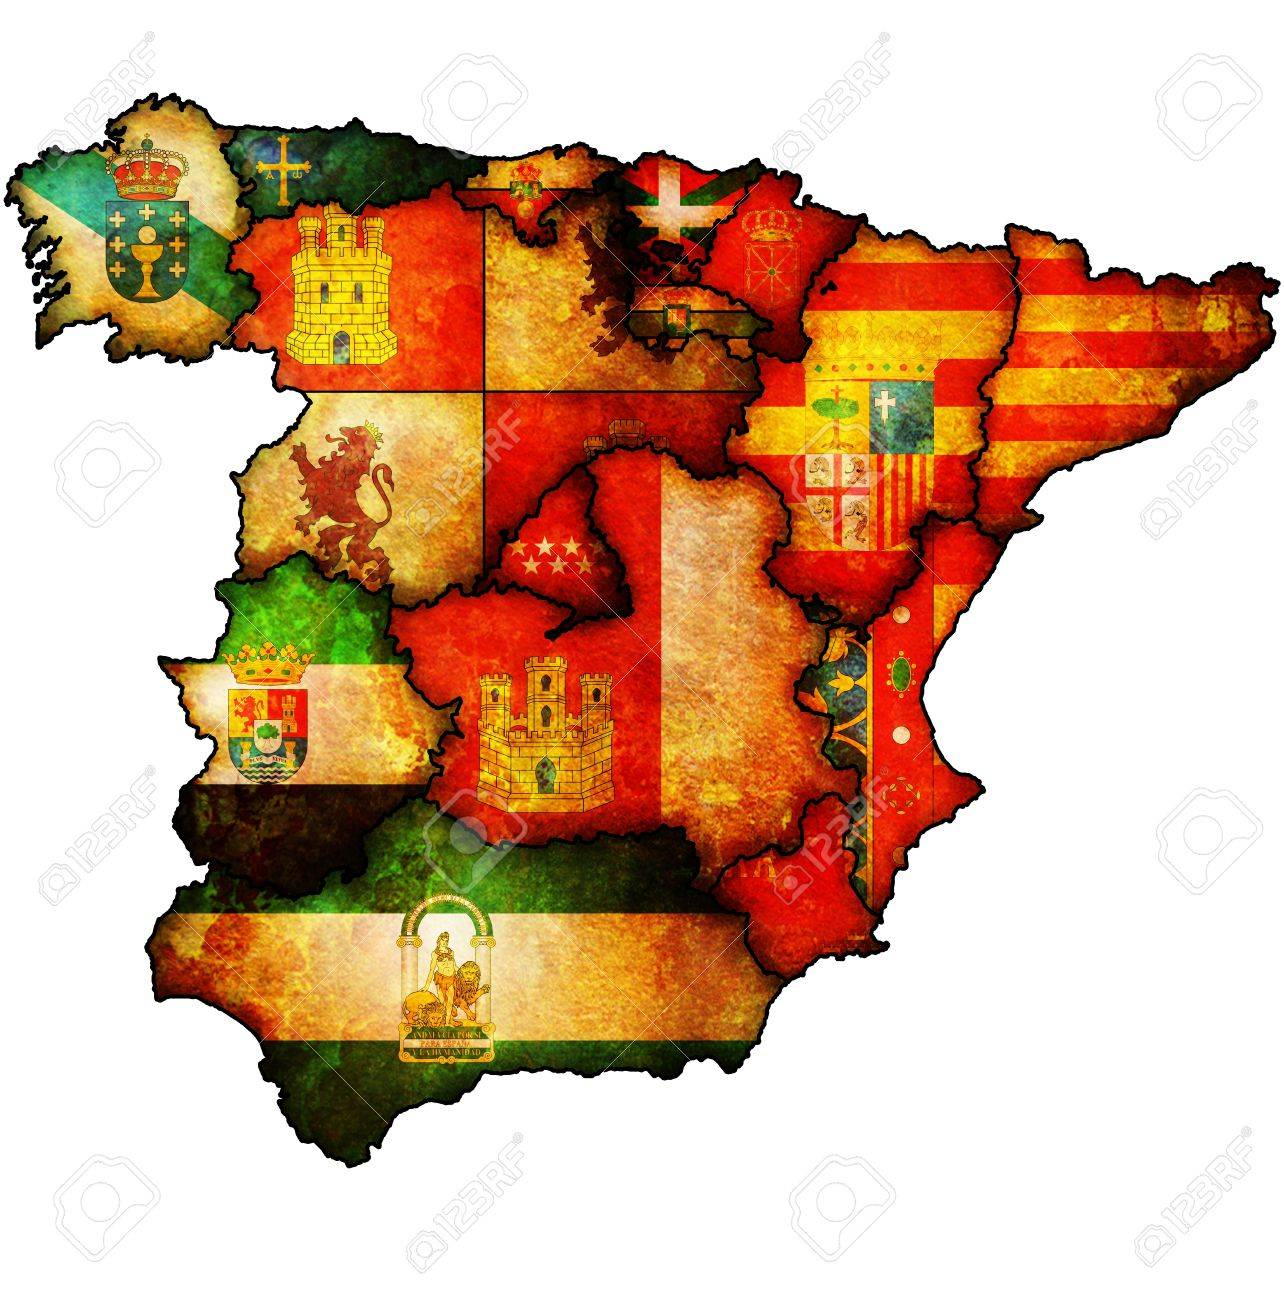 Administration Map Of Regions Of Spain With Flags And Emblems Stock ...